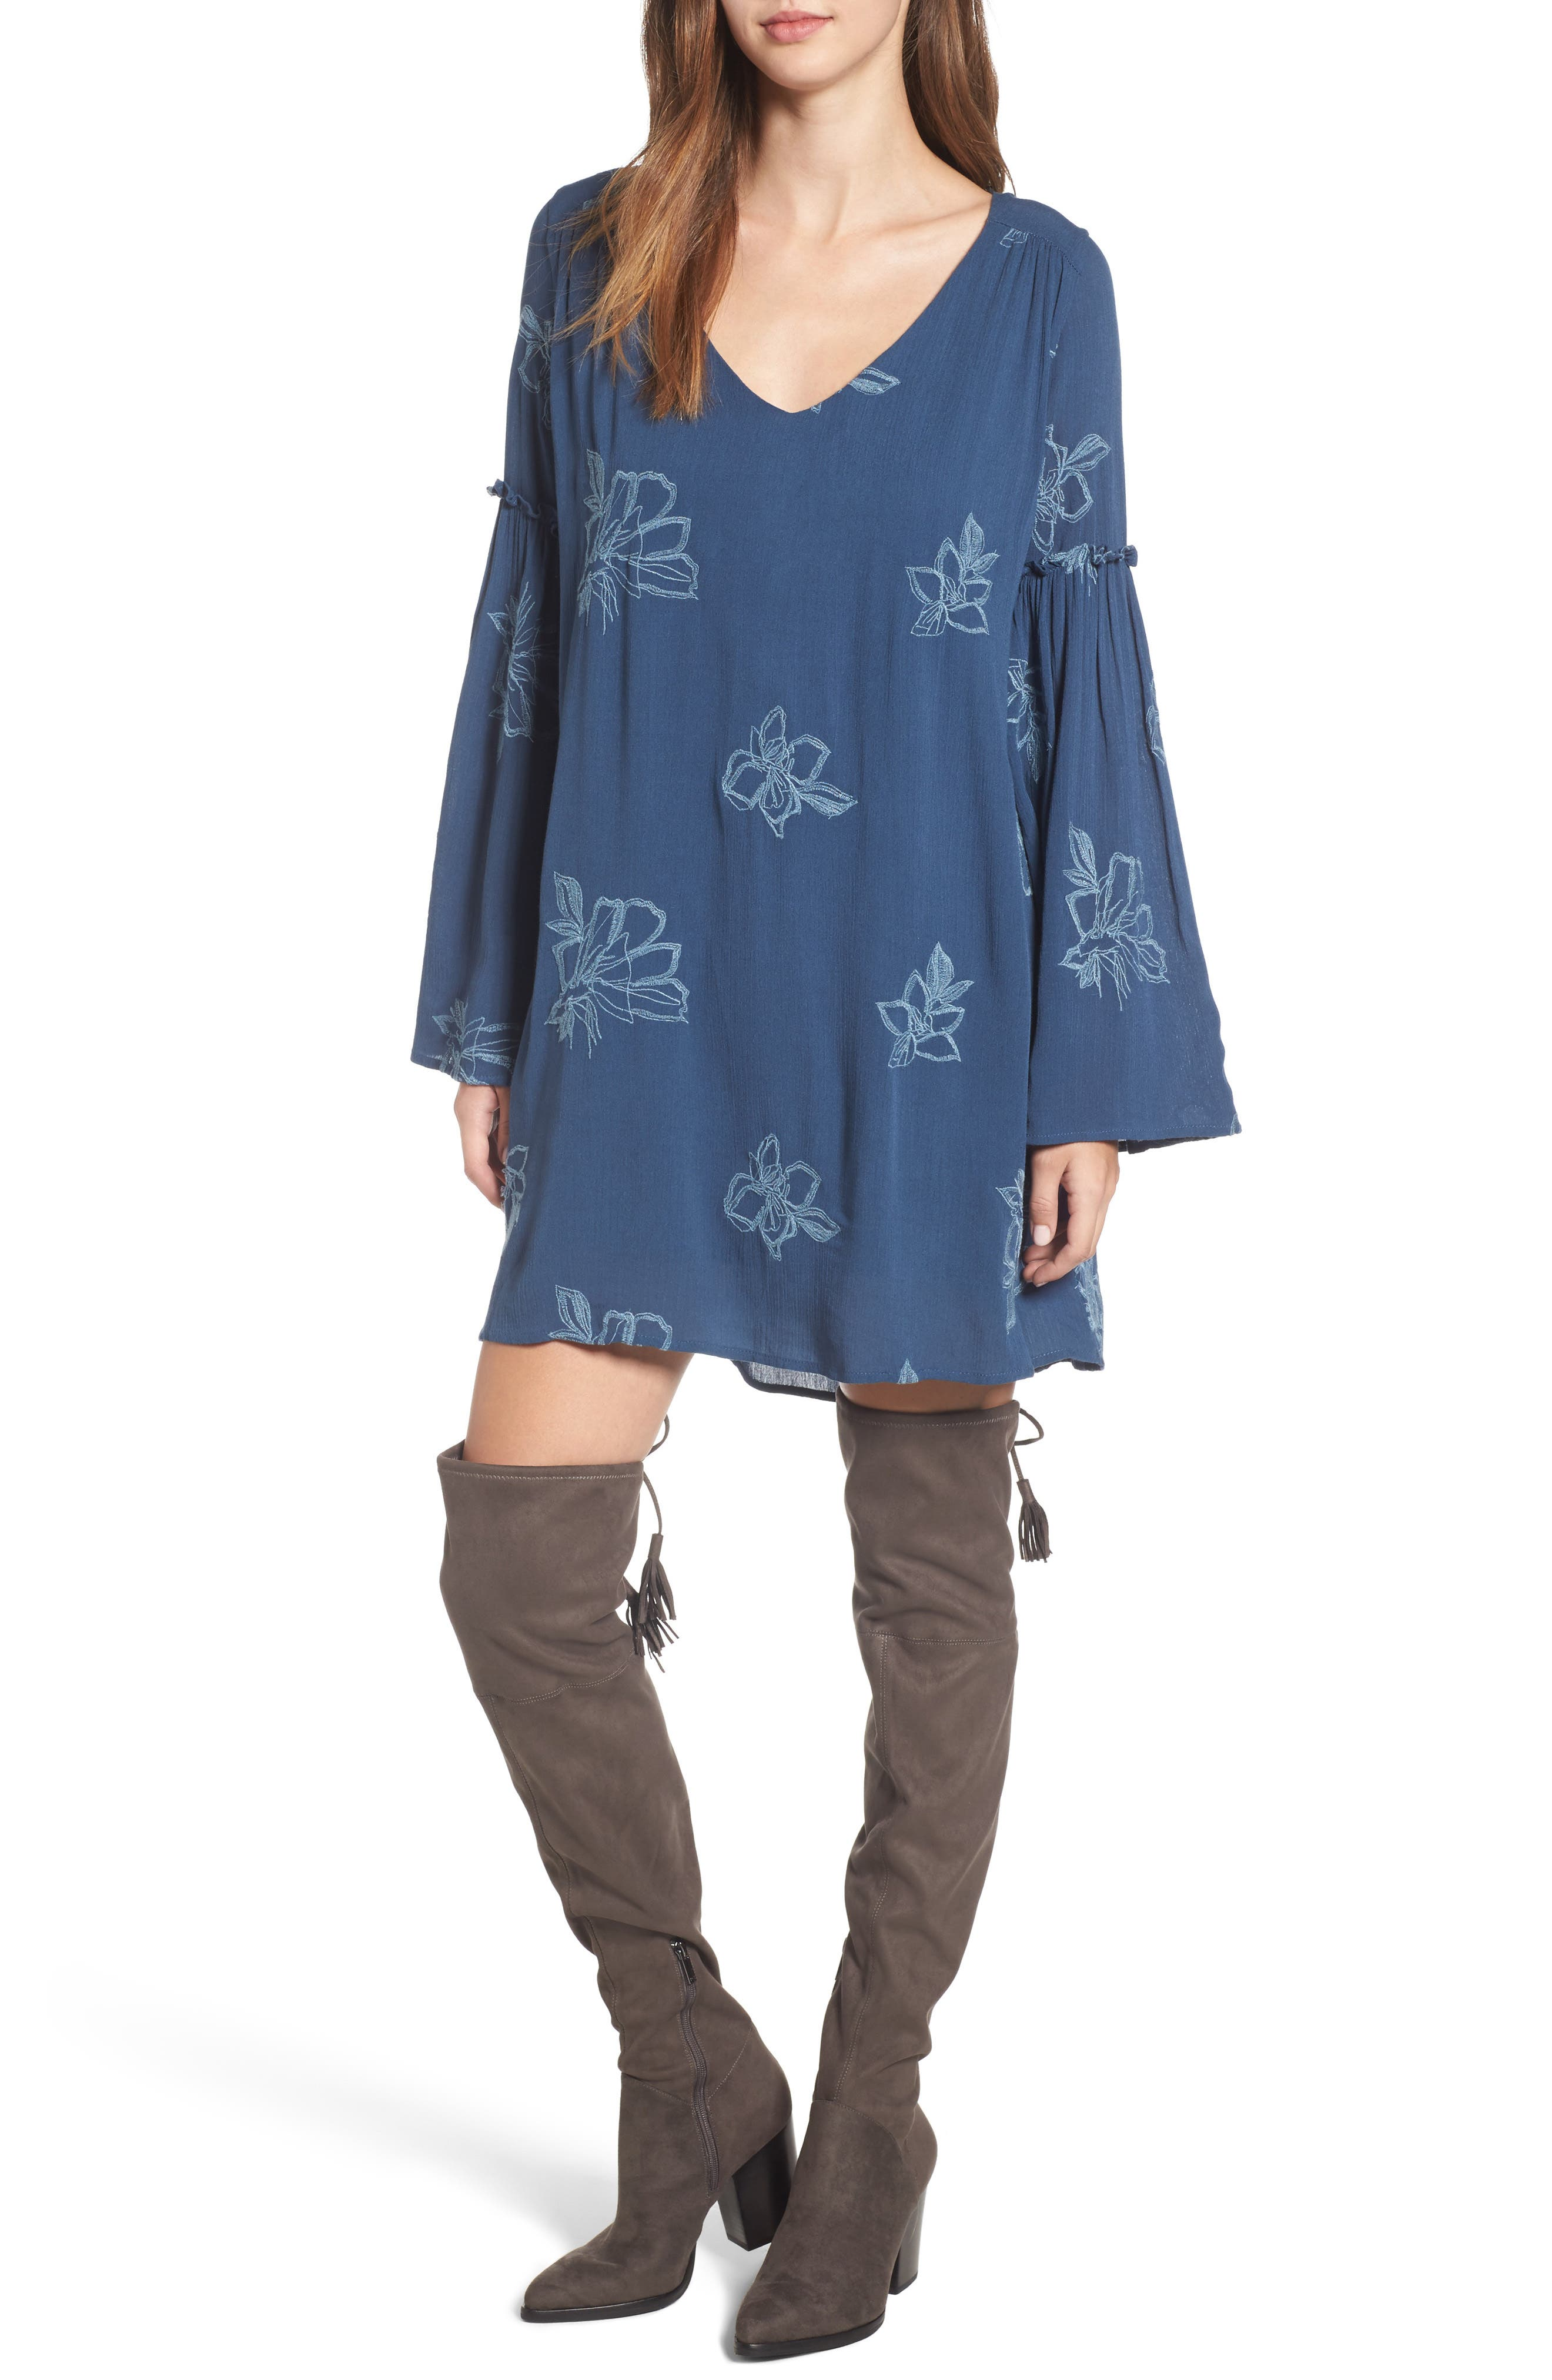 Autumn Embroidered Swing Dress,                             Main thumbnail 1, color,                             Blue